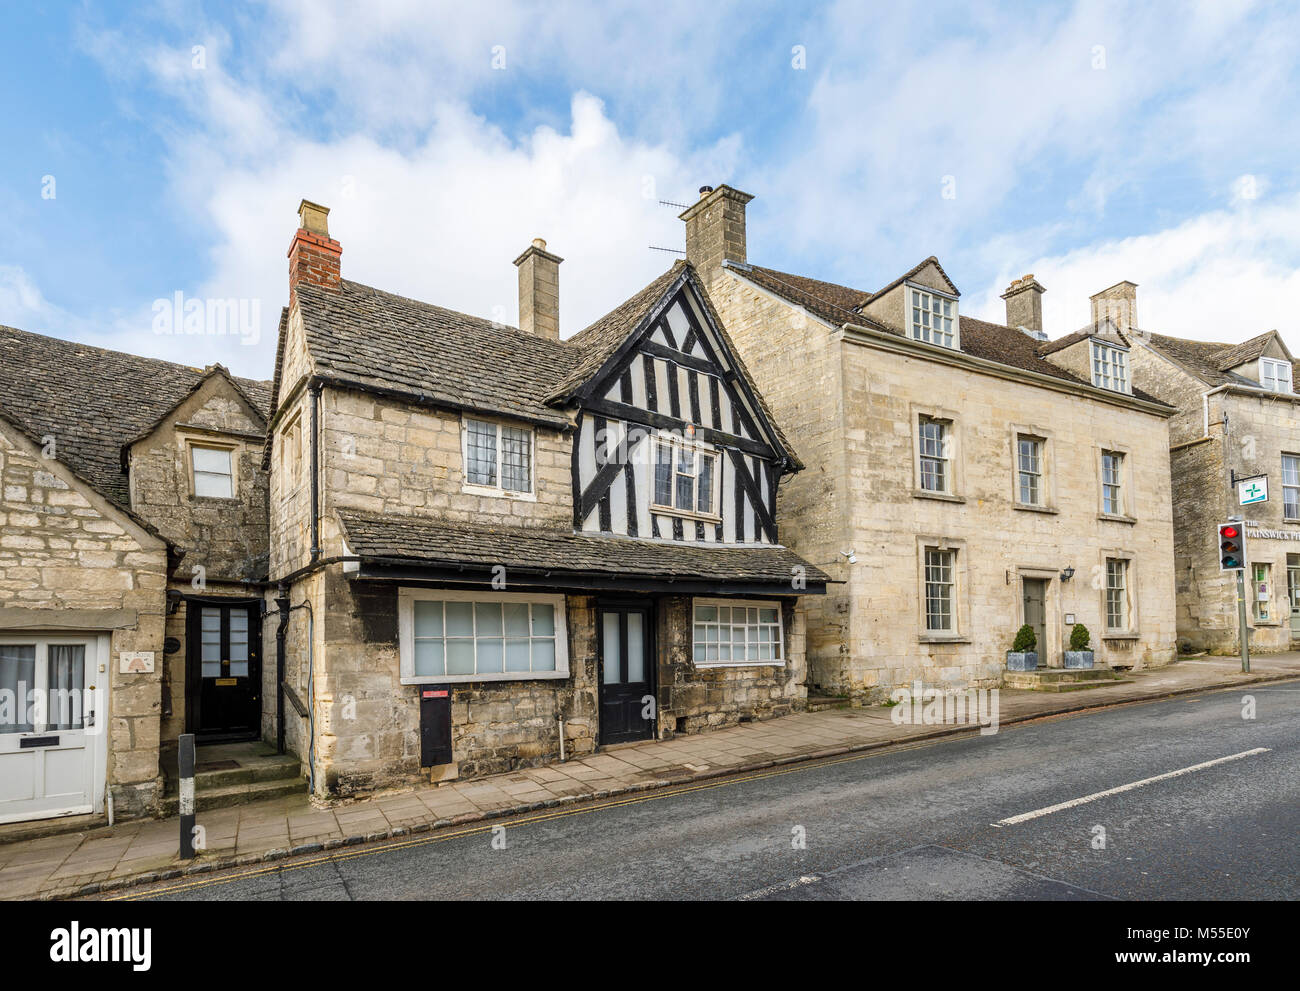 Sightseeing: Historic timbered house and Cotswold stone buildings in New Street, Painswick, an unspoilt village Stock Photo